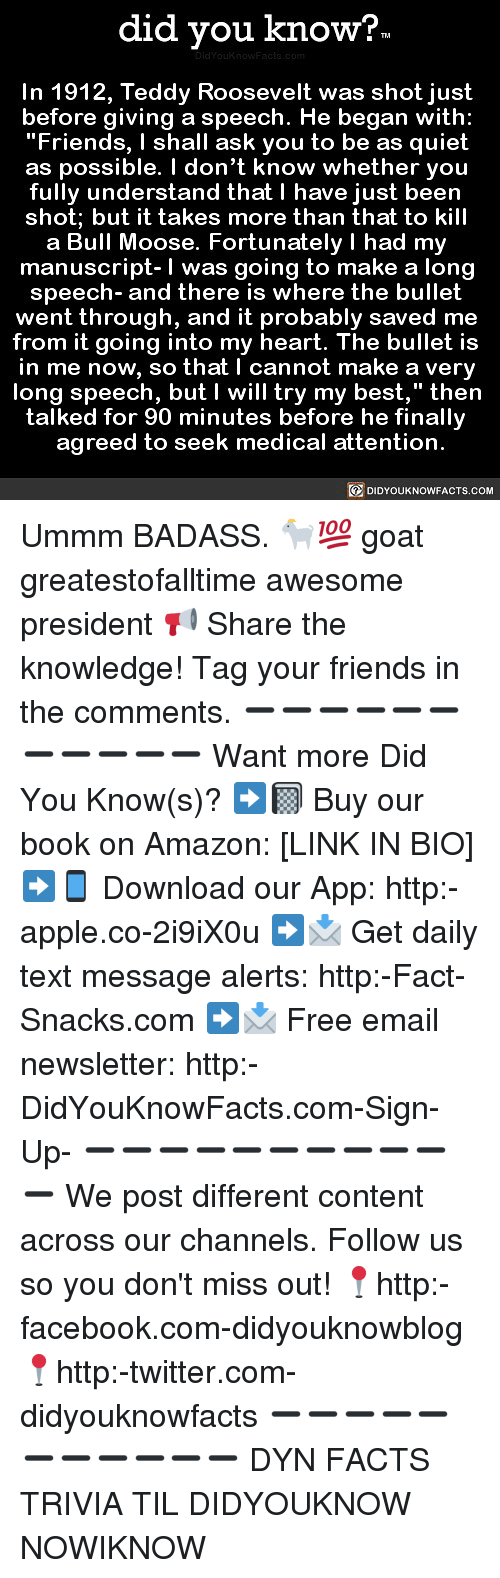 "Amazon, Apple, and Facebook: did you know?  In 1912, Teddy Roosevelt was shot just  before giving a speech. He began with:  ""Friends, I shall ask you to be as quiet  as possible. I don't know whether you  fully understand that I have just been  shot; but it takes more than that to kill  a Bull Moose. Fortunately I had my  manuscript-I was going to make a lono  speech- and there is where the bullet  went through, and it probably saved me  from it going into my heart. The bullet is  in me now, so that I cannot make a very  long speech, but I will try my best,"" then  talked for 90 minutes before he finallv  agreed to seek medical attention  DIDYOUKNOWFACTS.COM Ummm BADASS. 🐐💯 goat greatestofalltime awesome president 📢 Share the knowledge! Tag your friends in the comments. ➖➖➖➖➖➖➖➖➖➖➖ Want more Did You Know(s)? ➡📓 Buy our book on Amazon: [LINK IN BIO] ➡📱 Download our App: http:-apple.co-2i9iX0u ➡📩 Get daily text message alerts: http:-Fact-Snacks.com ➡📩 Free email newsletter: http:-DidYouKnowFacts.com-Sign-Up- ➖➖➖➖➖➖➖➖➖➖➖ We post different content across our channels. Follow us so you don't miss out! 📍http:-facebook.com-didyouknowblog 📍http:-twitter.com-didyouknowfacts ➖➖➖➖➖➖➖➖➖➖➖ DYN FACTS TRIVIA TIL DIDYOUKNOW NOWIKNOW"